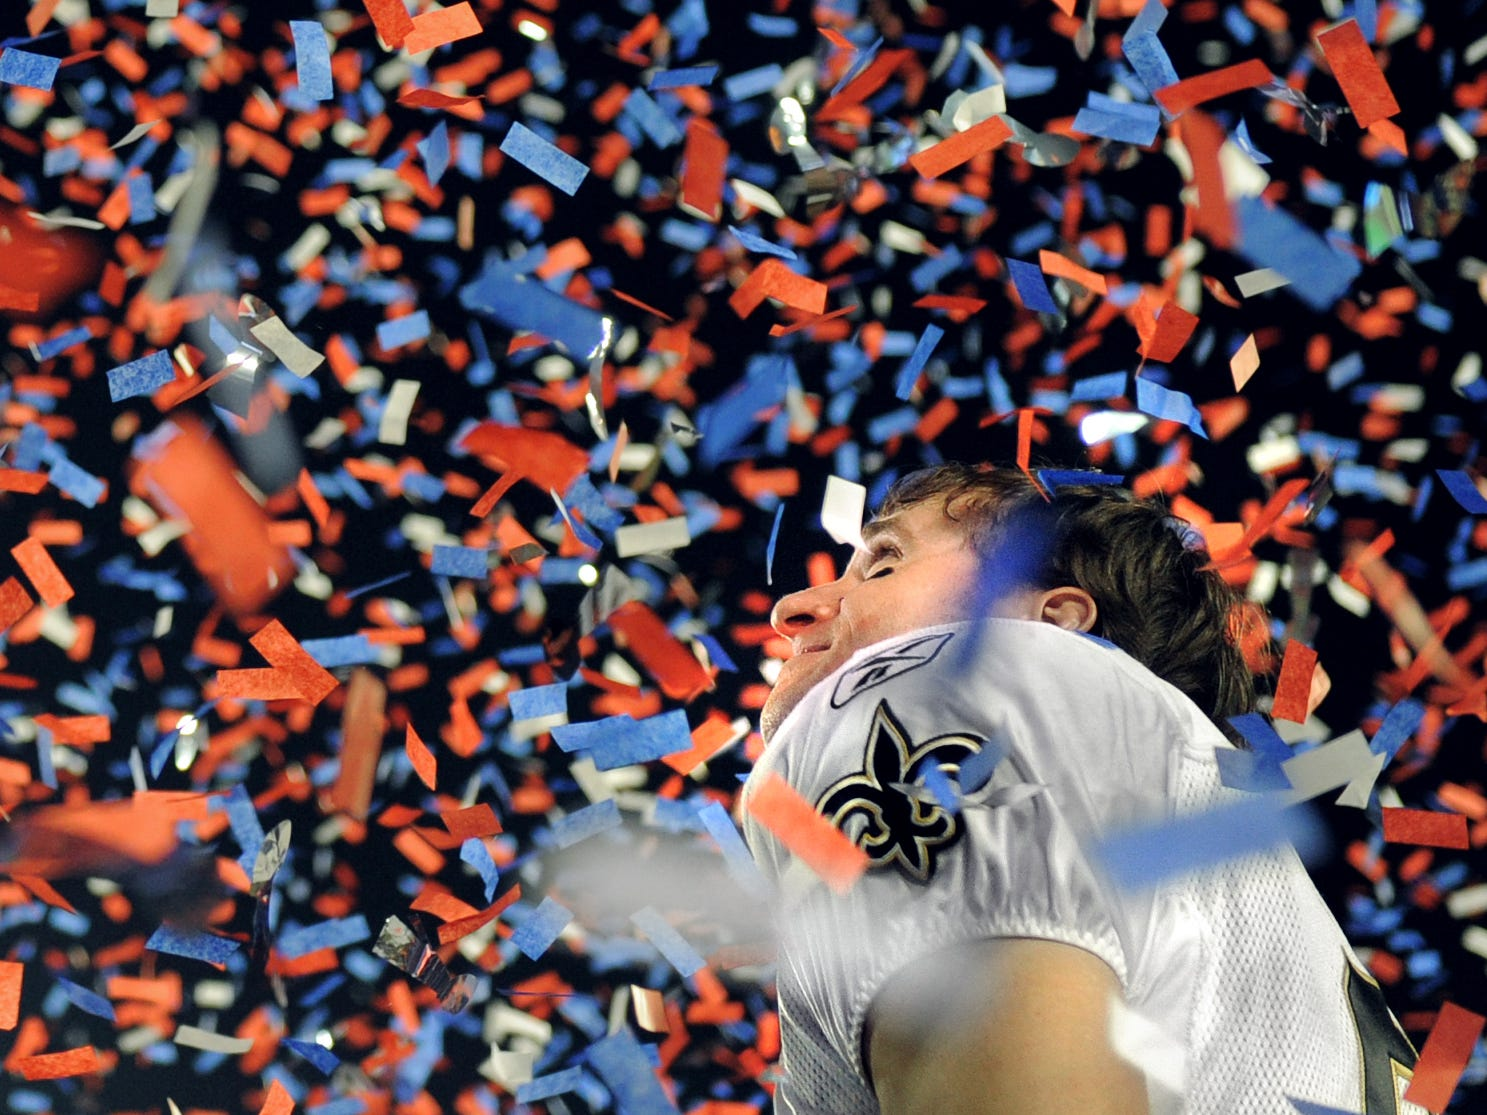 2010: Brees looked into the flying confetti after he and the Saints beat the Colts 31-17 in Super Bowl XLIV Sunday, Feb. 7 in Miami. (